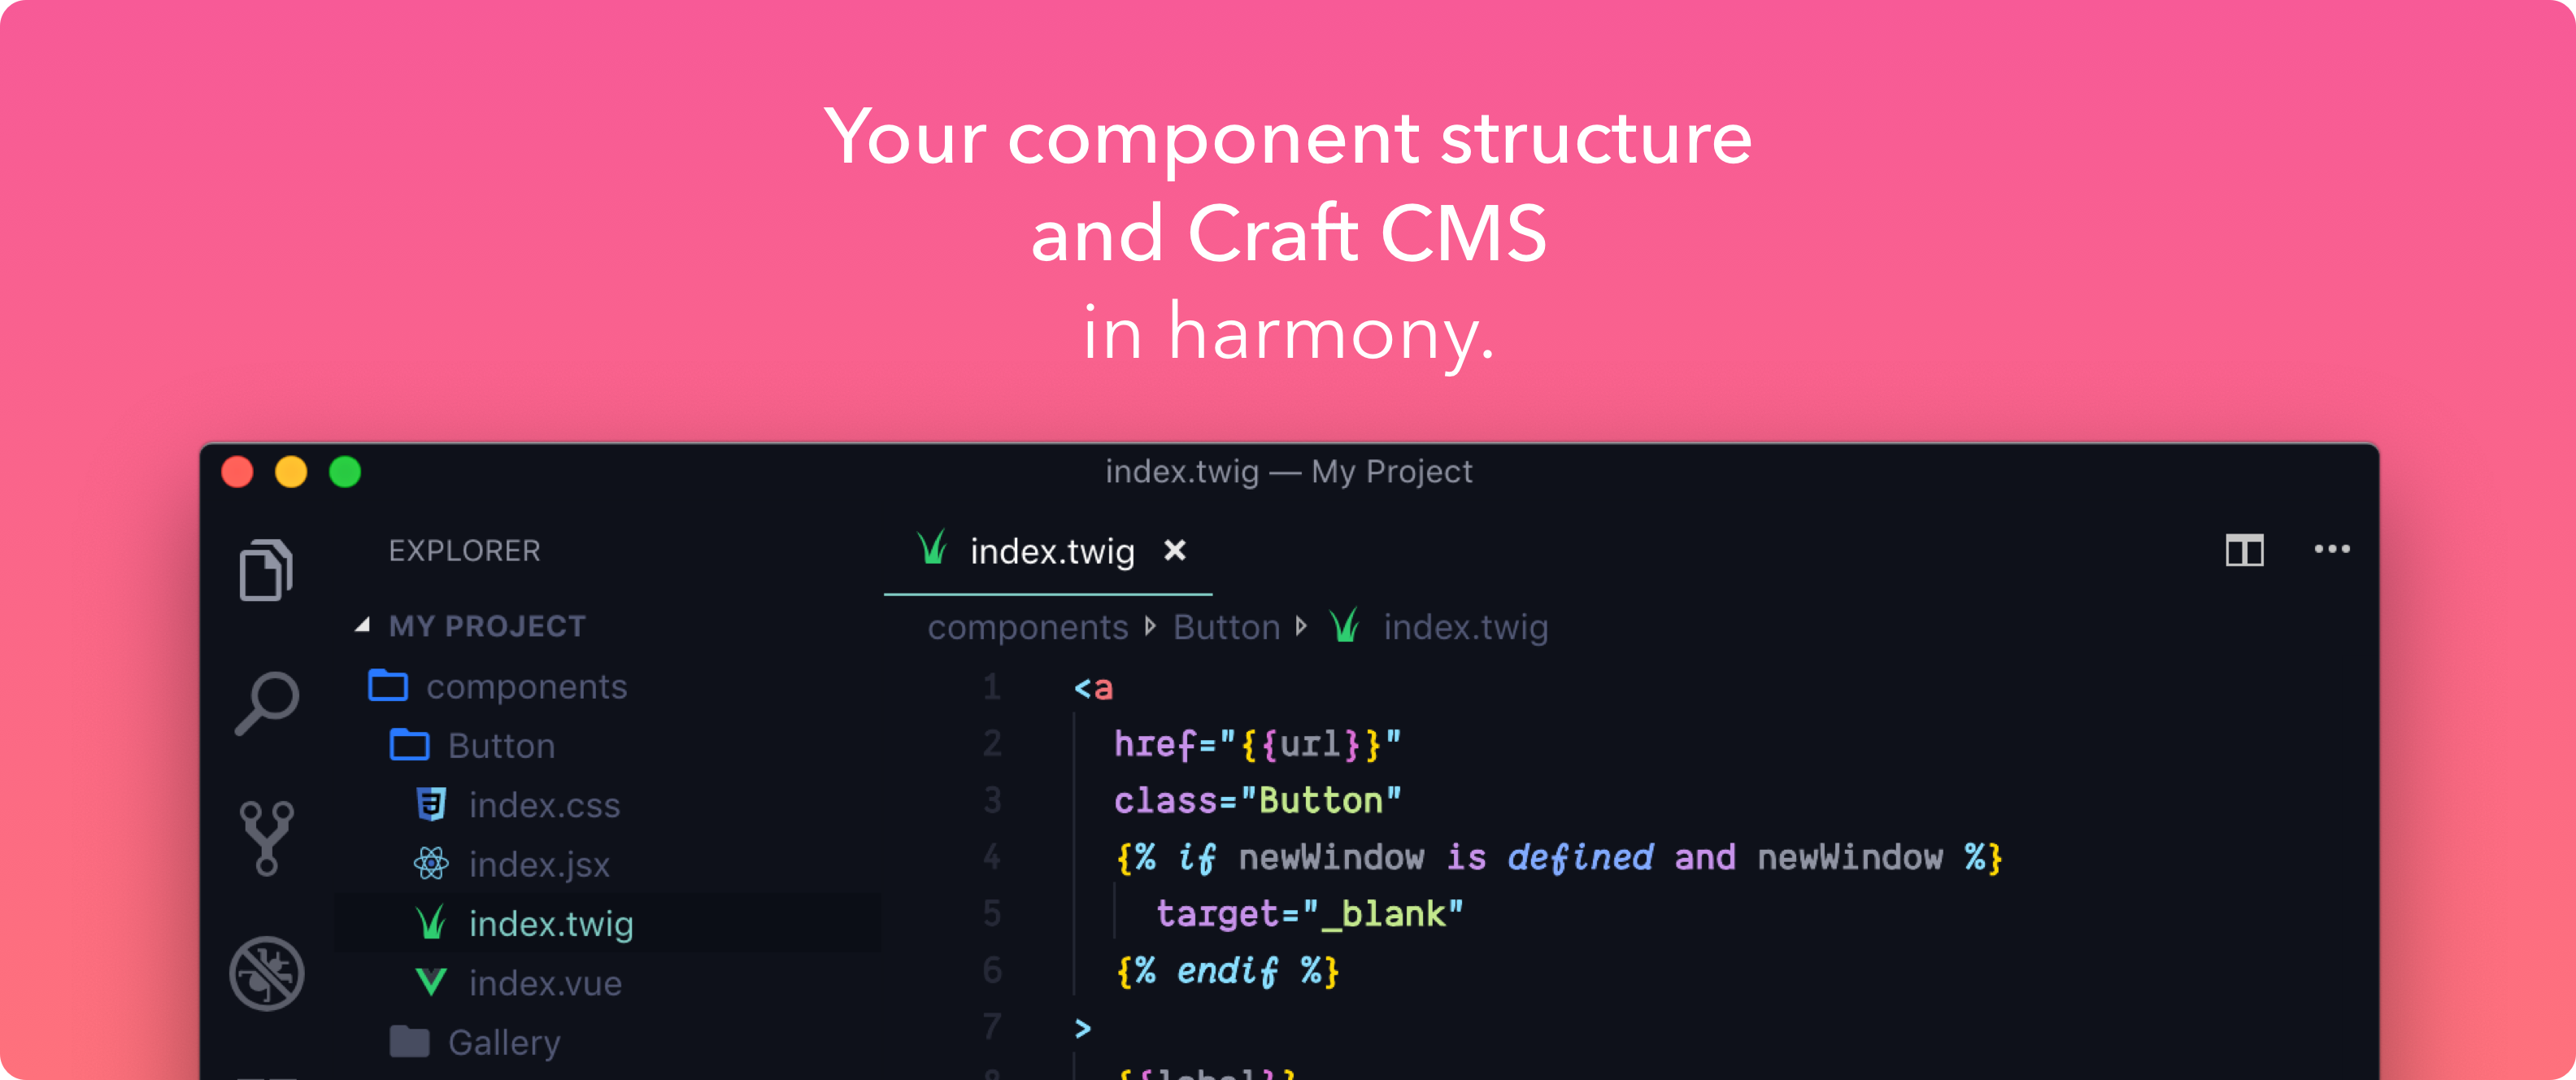 Your component structure and Craft CMS in harmony